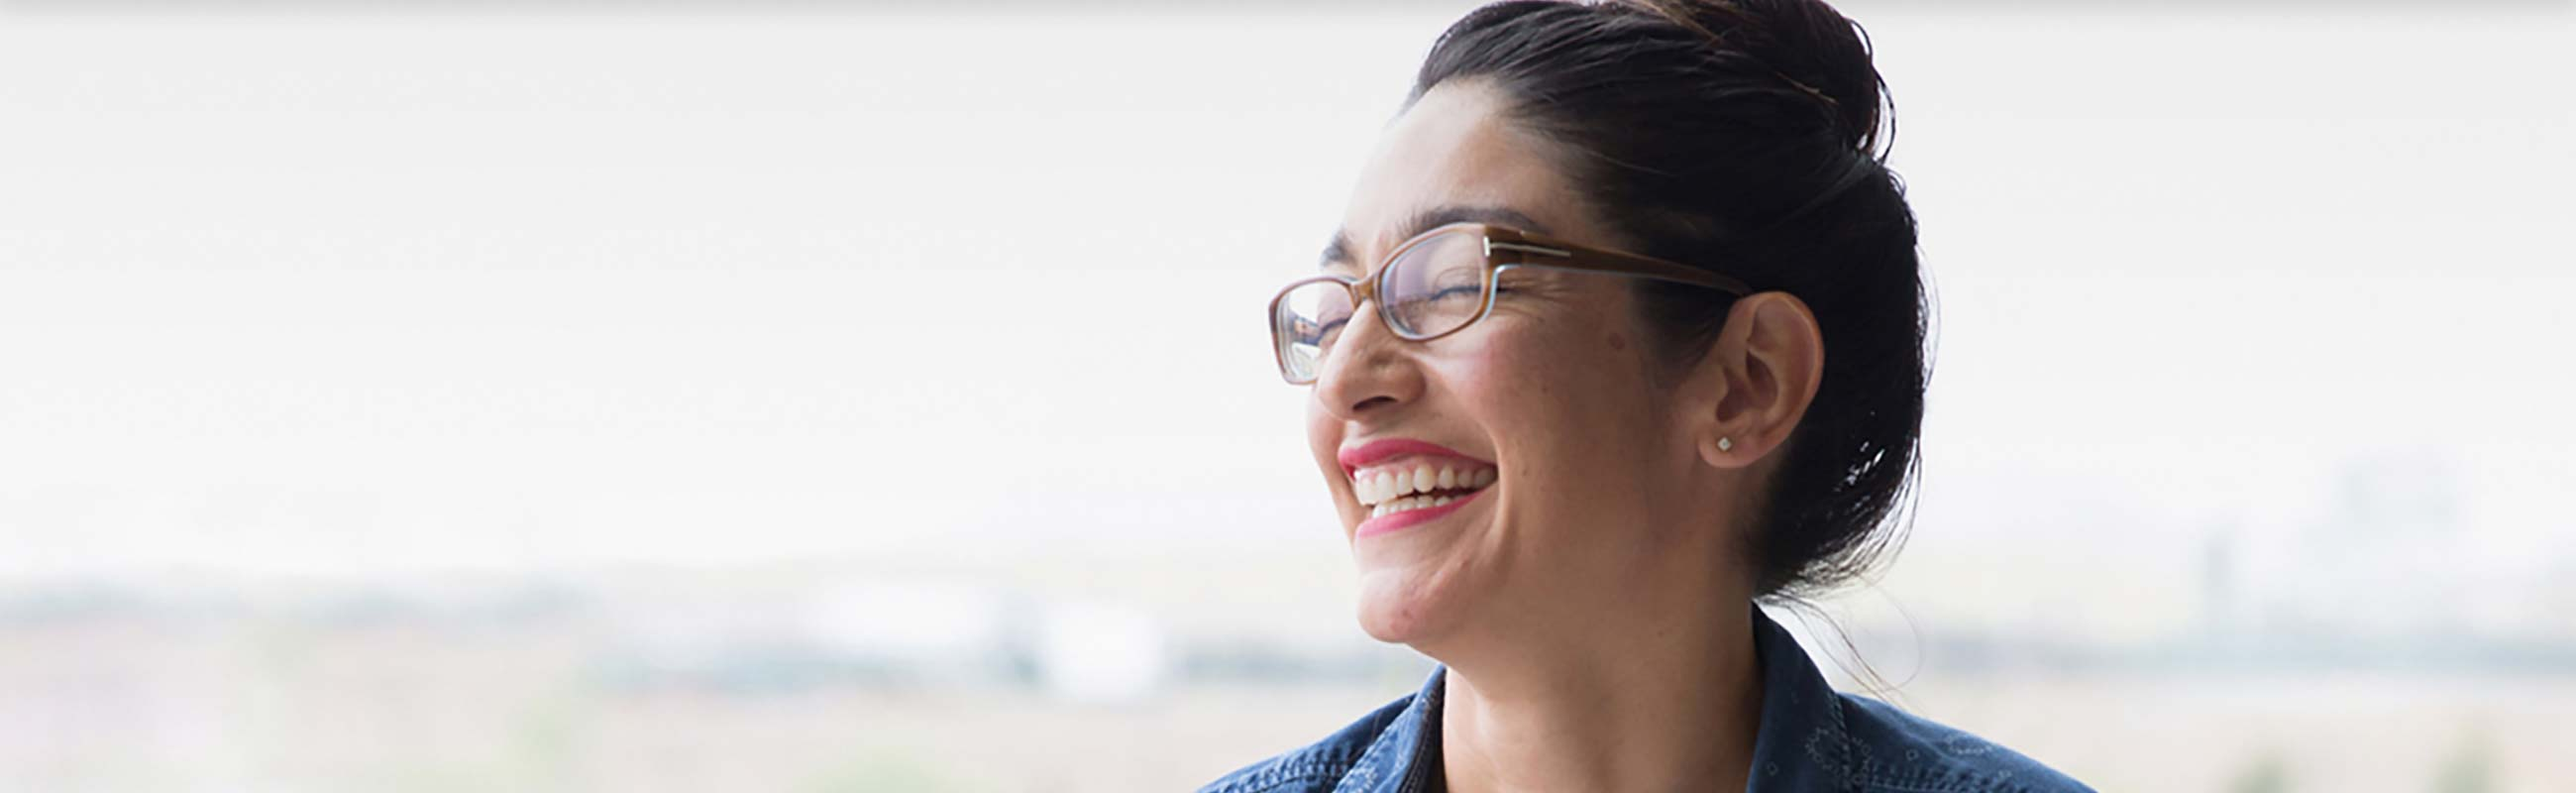 Headshot of woman wearing glasses laughing.